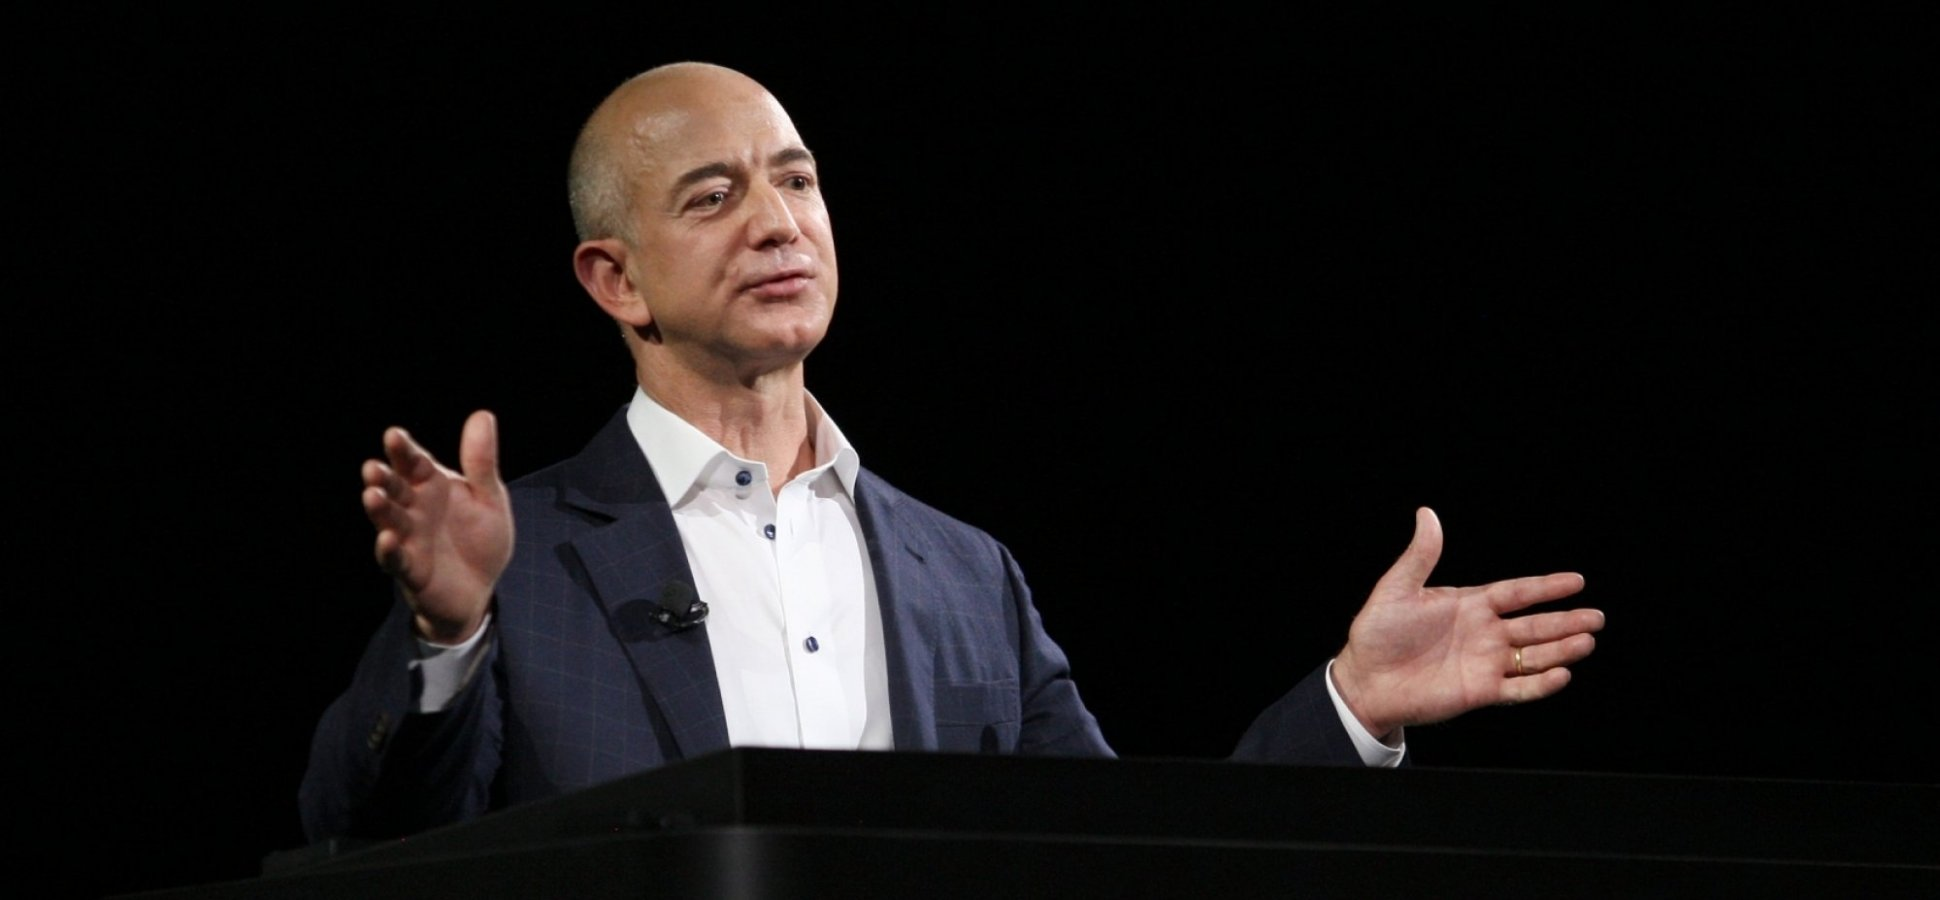 17 Years Ago, Jeff Bezos Shared the Interview Secrets That Built Amazon. Here's What He Said